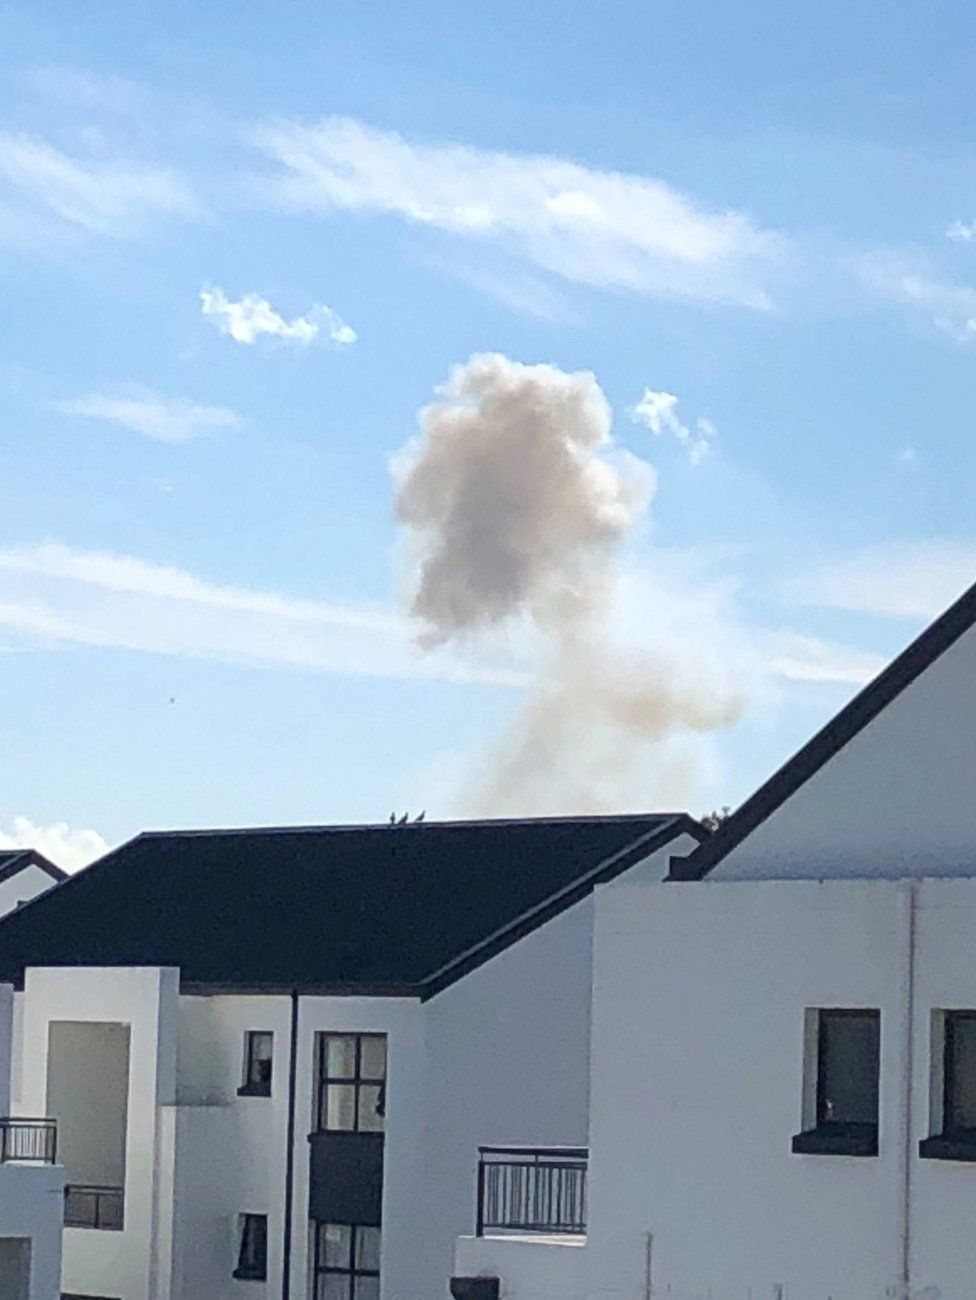 Smoke is seen during an explosion at the South African munitions depot in Somerset West, near Cape Town, South Africa, 3 September 2018